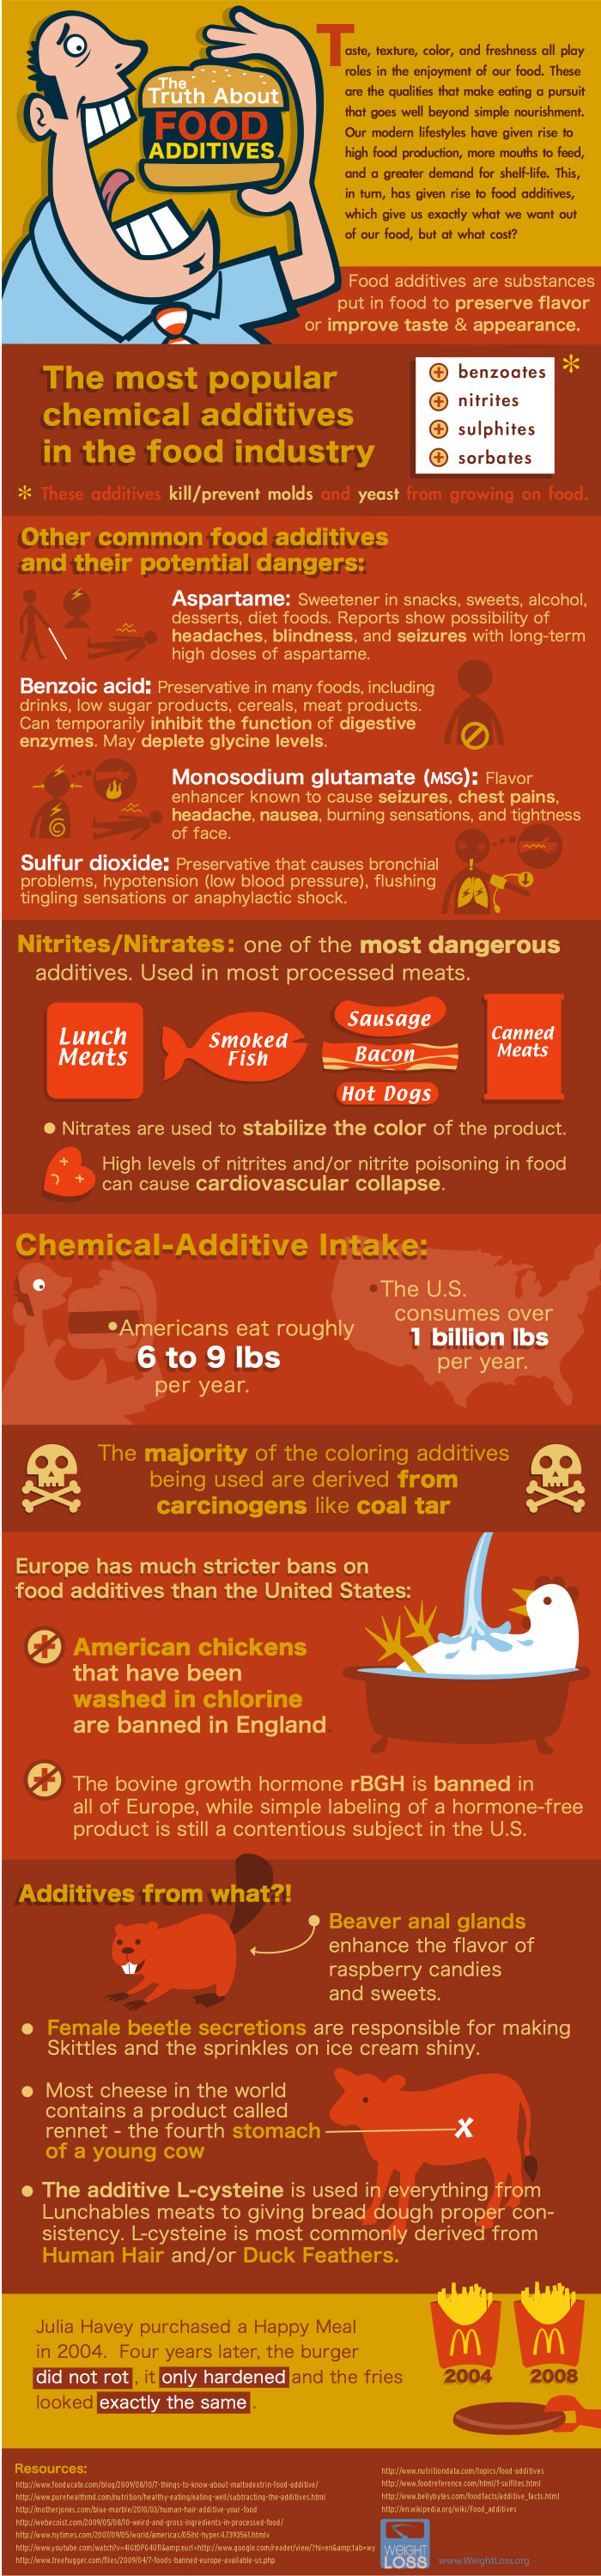 The Truth About Food Additives Infographic Food Additives Health Blog Health And Nutrition